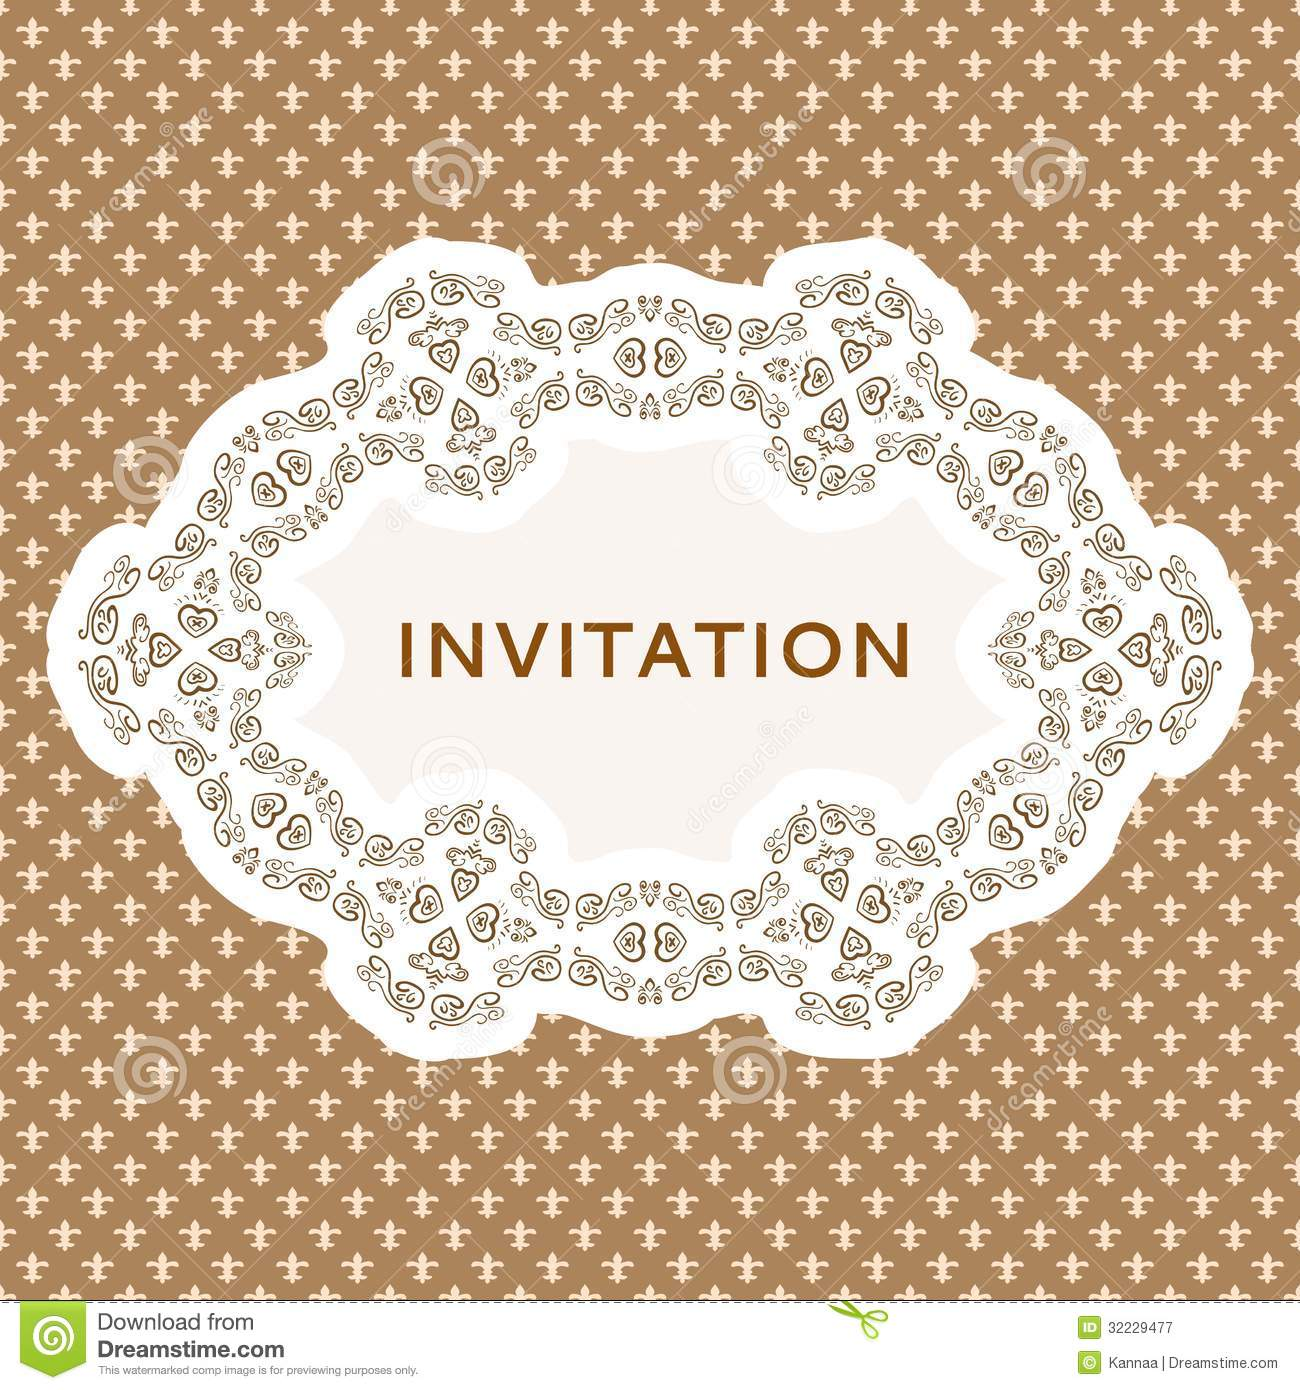 Wedding Invitations Prices is perfect invitations example